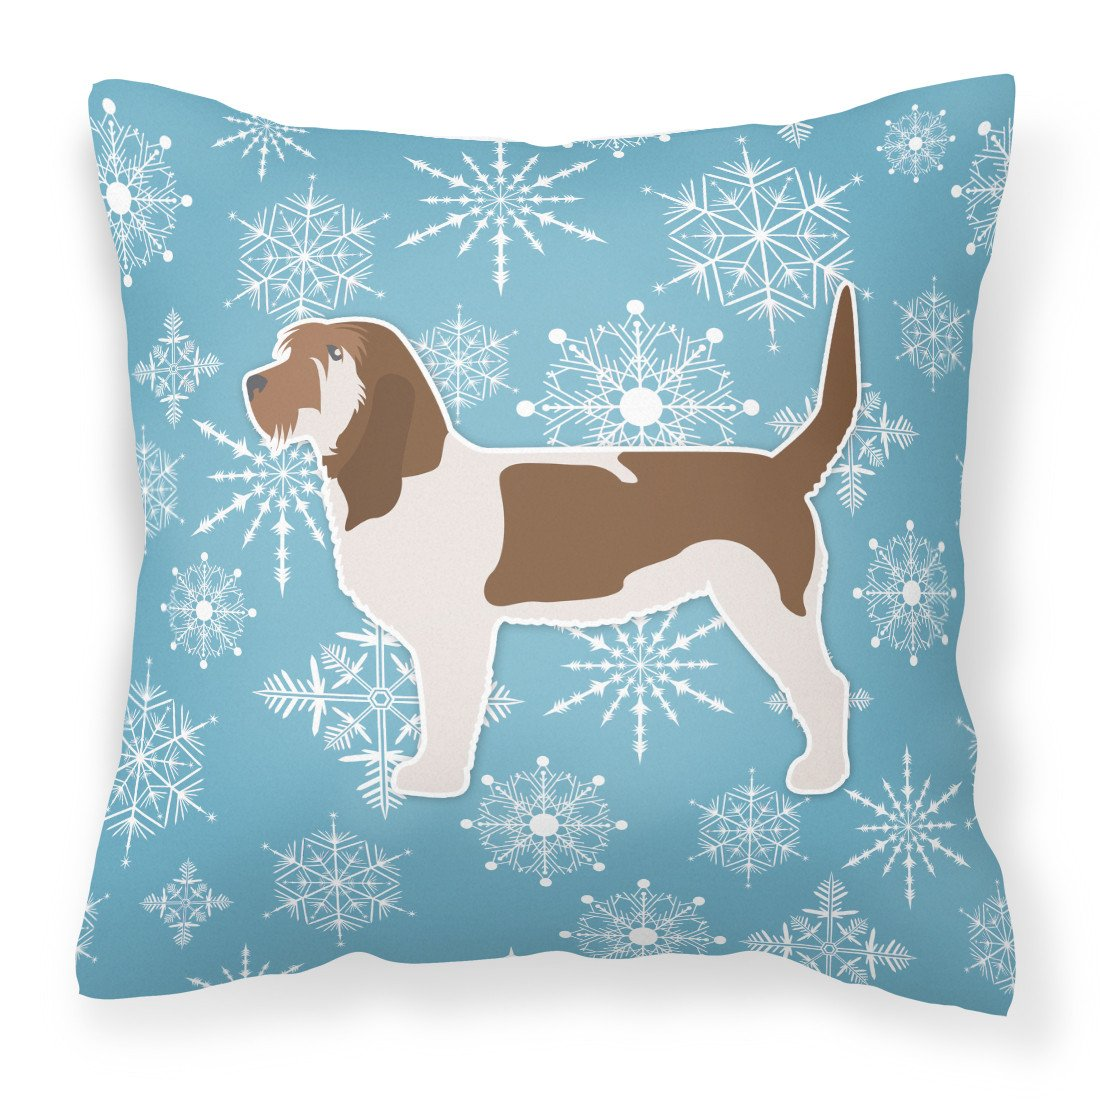 Winter Snowflake Grand Basset Griffon Vendeen Fabric Decorative Pillow BB3490PW1818 by Caroline's Treasures